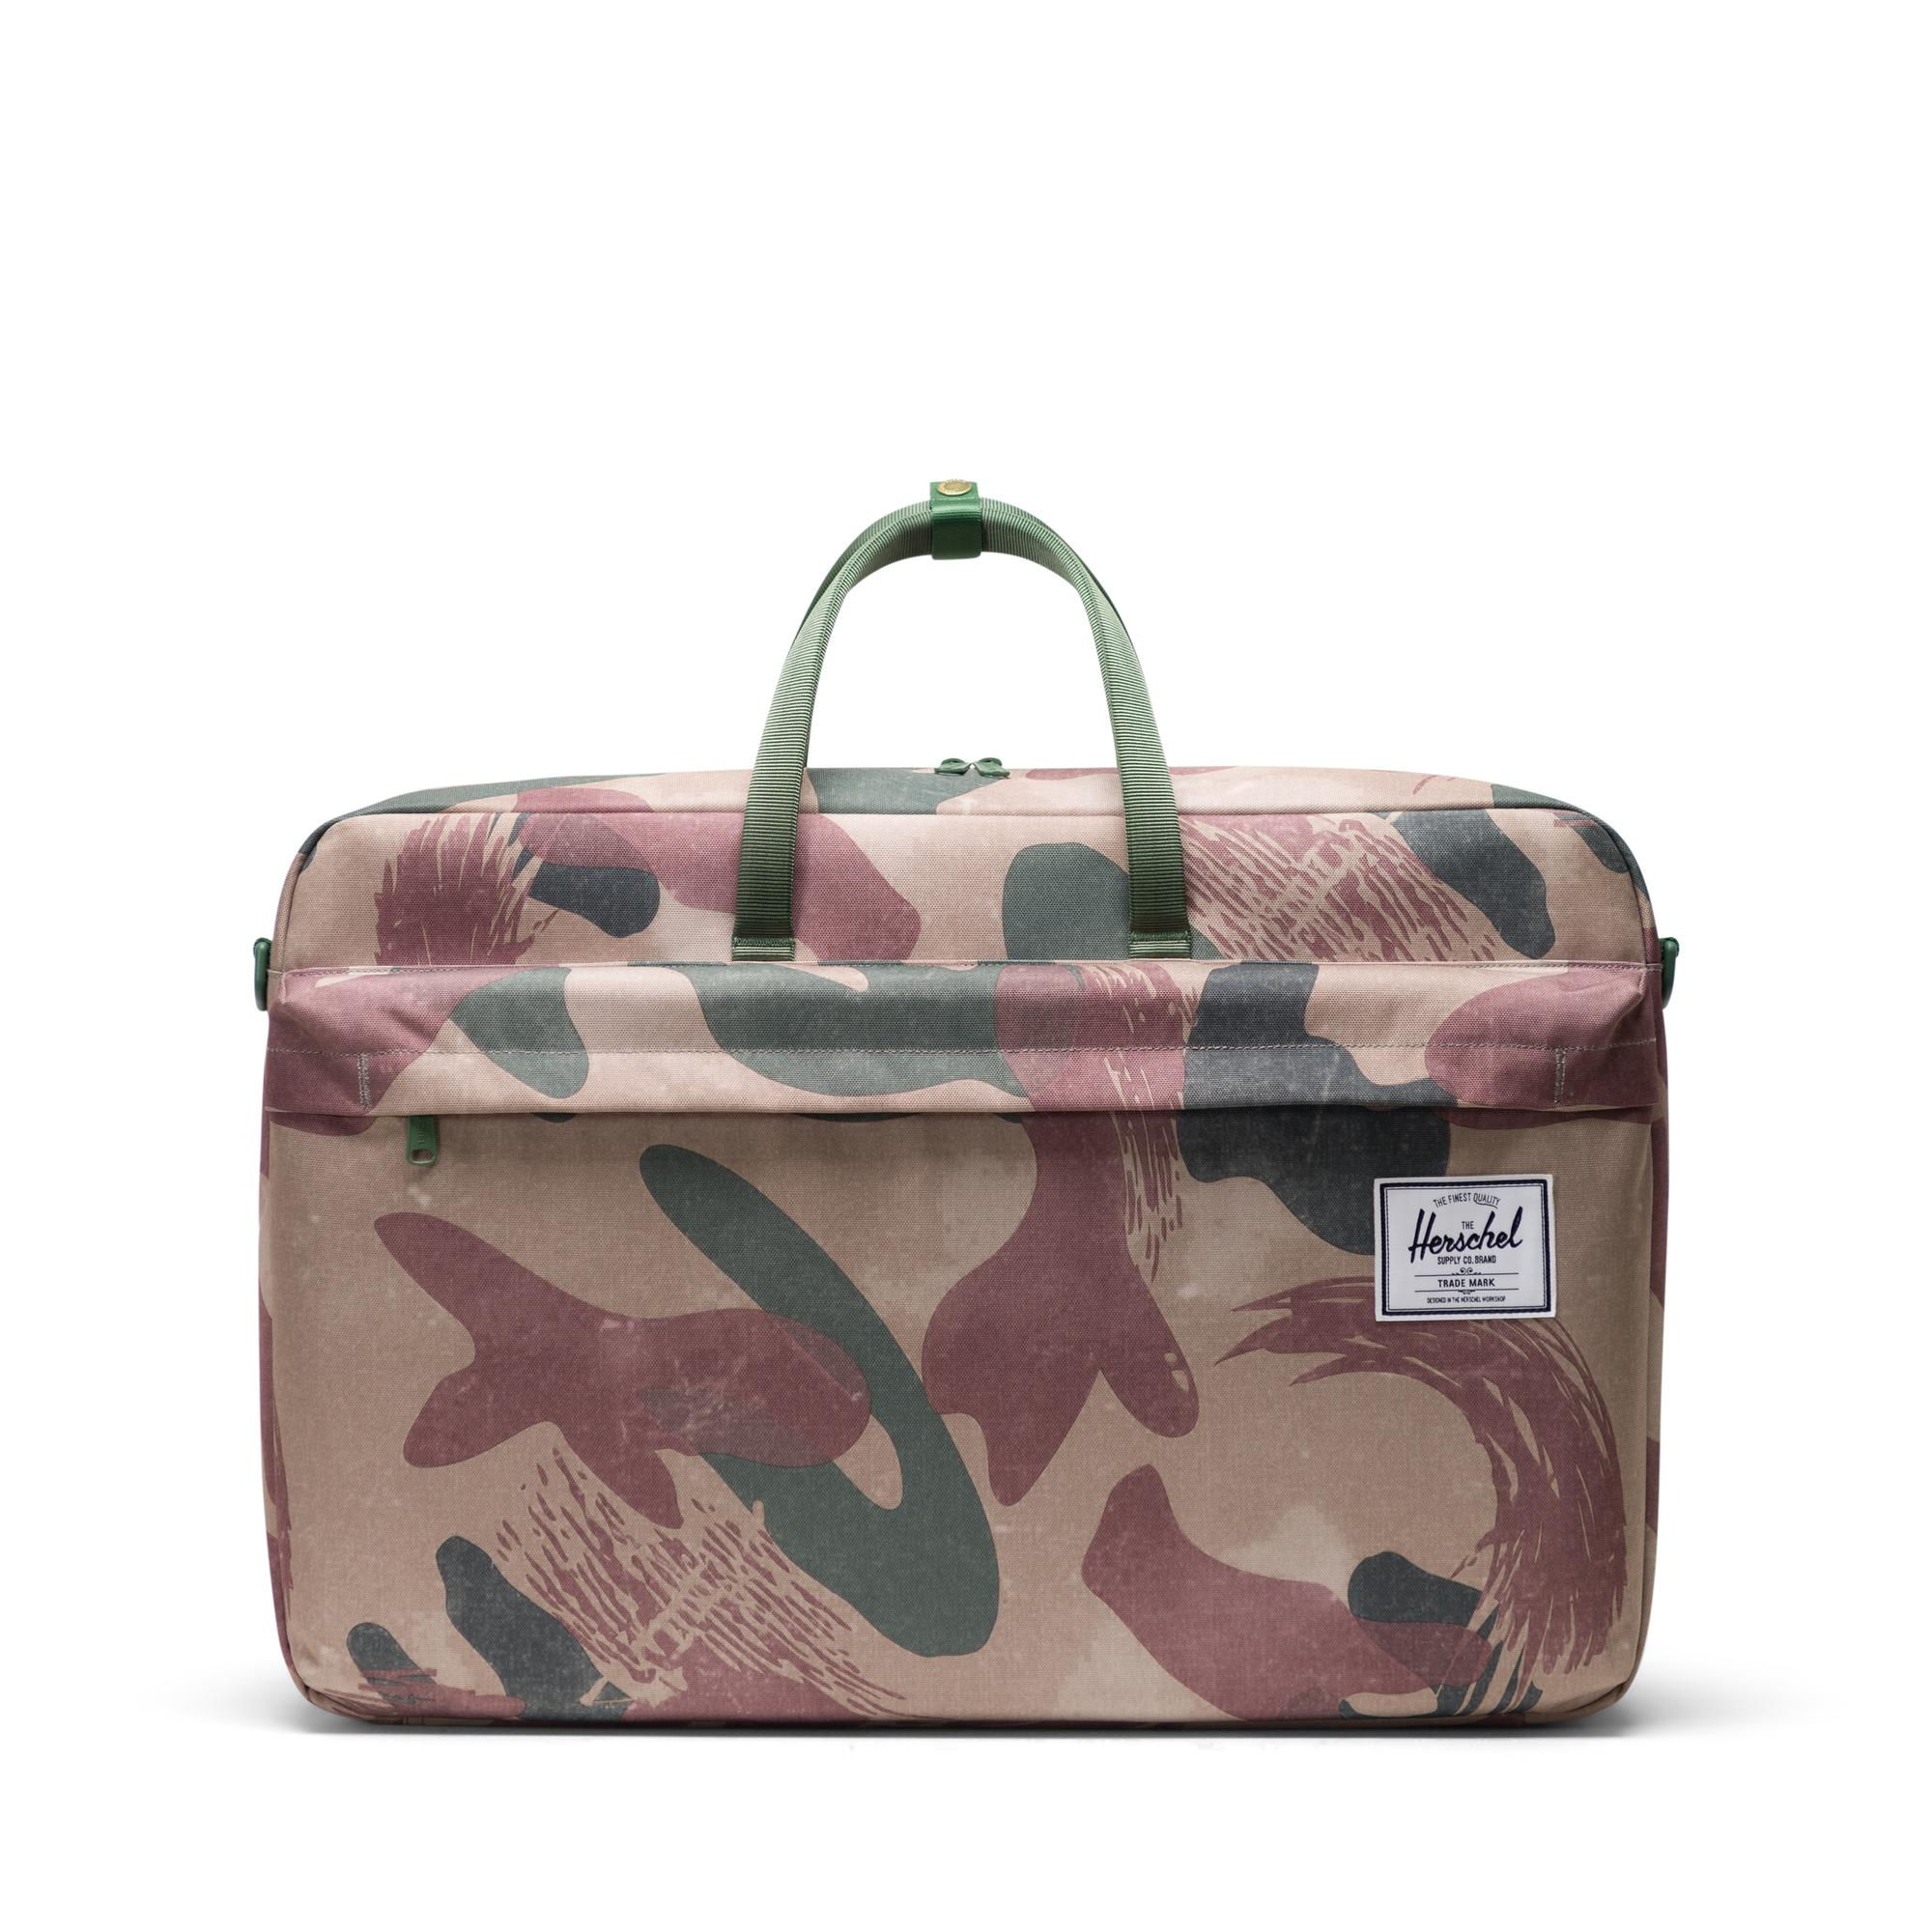 Winslow Travel Duffle in Black NWT Free Shipping Herschel Supply Co